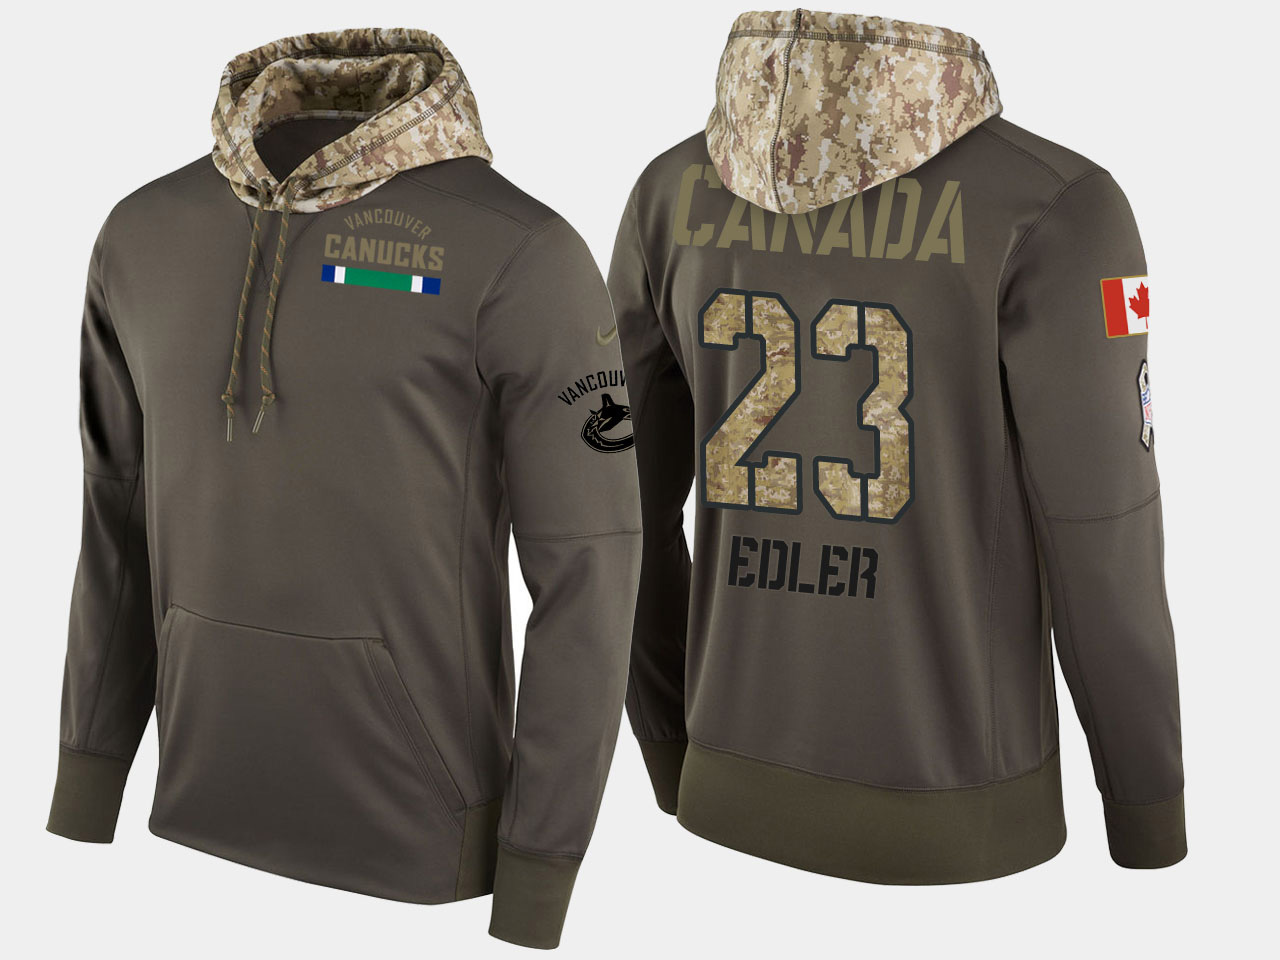 Nike Canucks 23 Alexander Edler Olive Salute To Service Pullover Hoodie